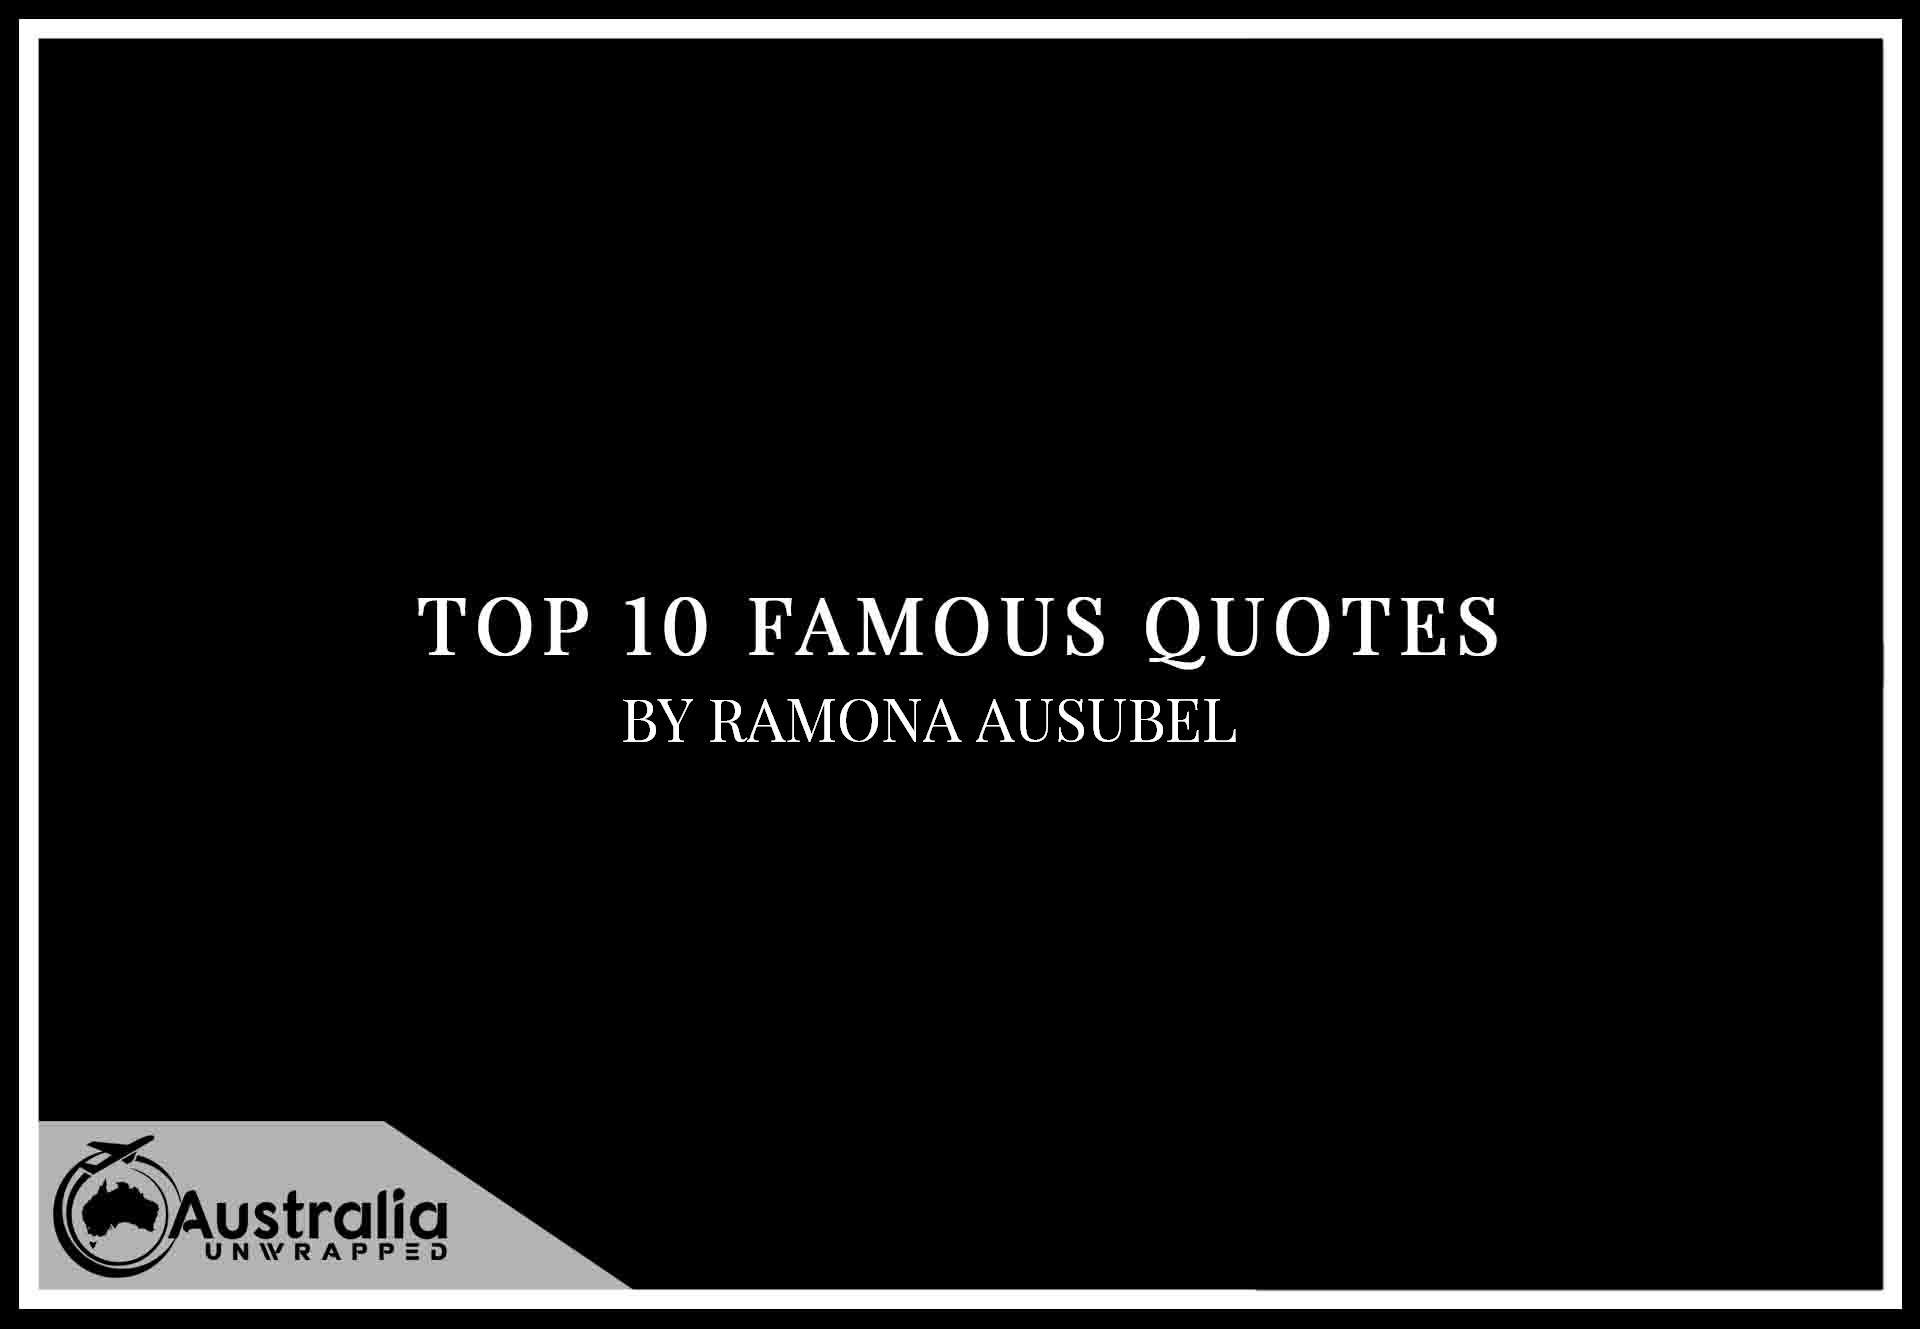 Top 10 Famous Quotes by Author Ramona Ausubel